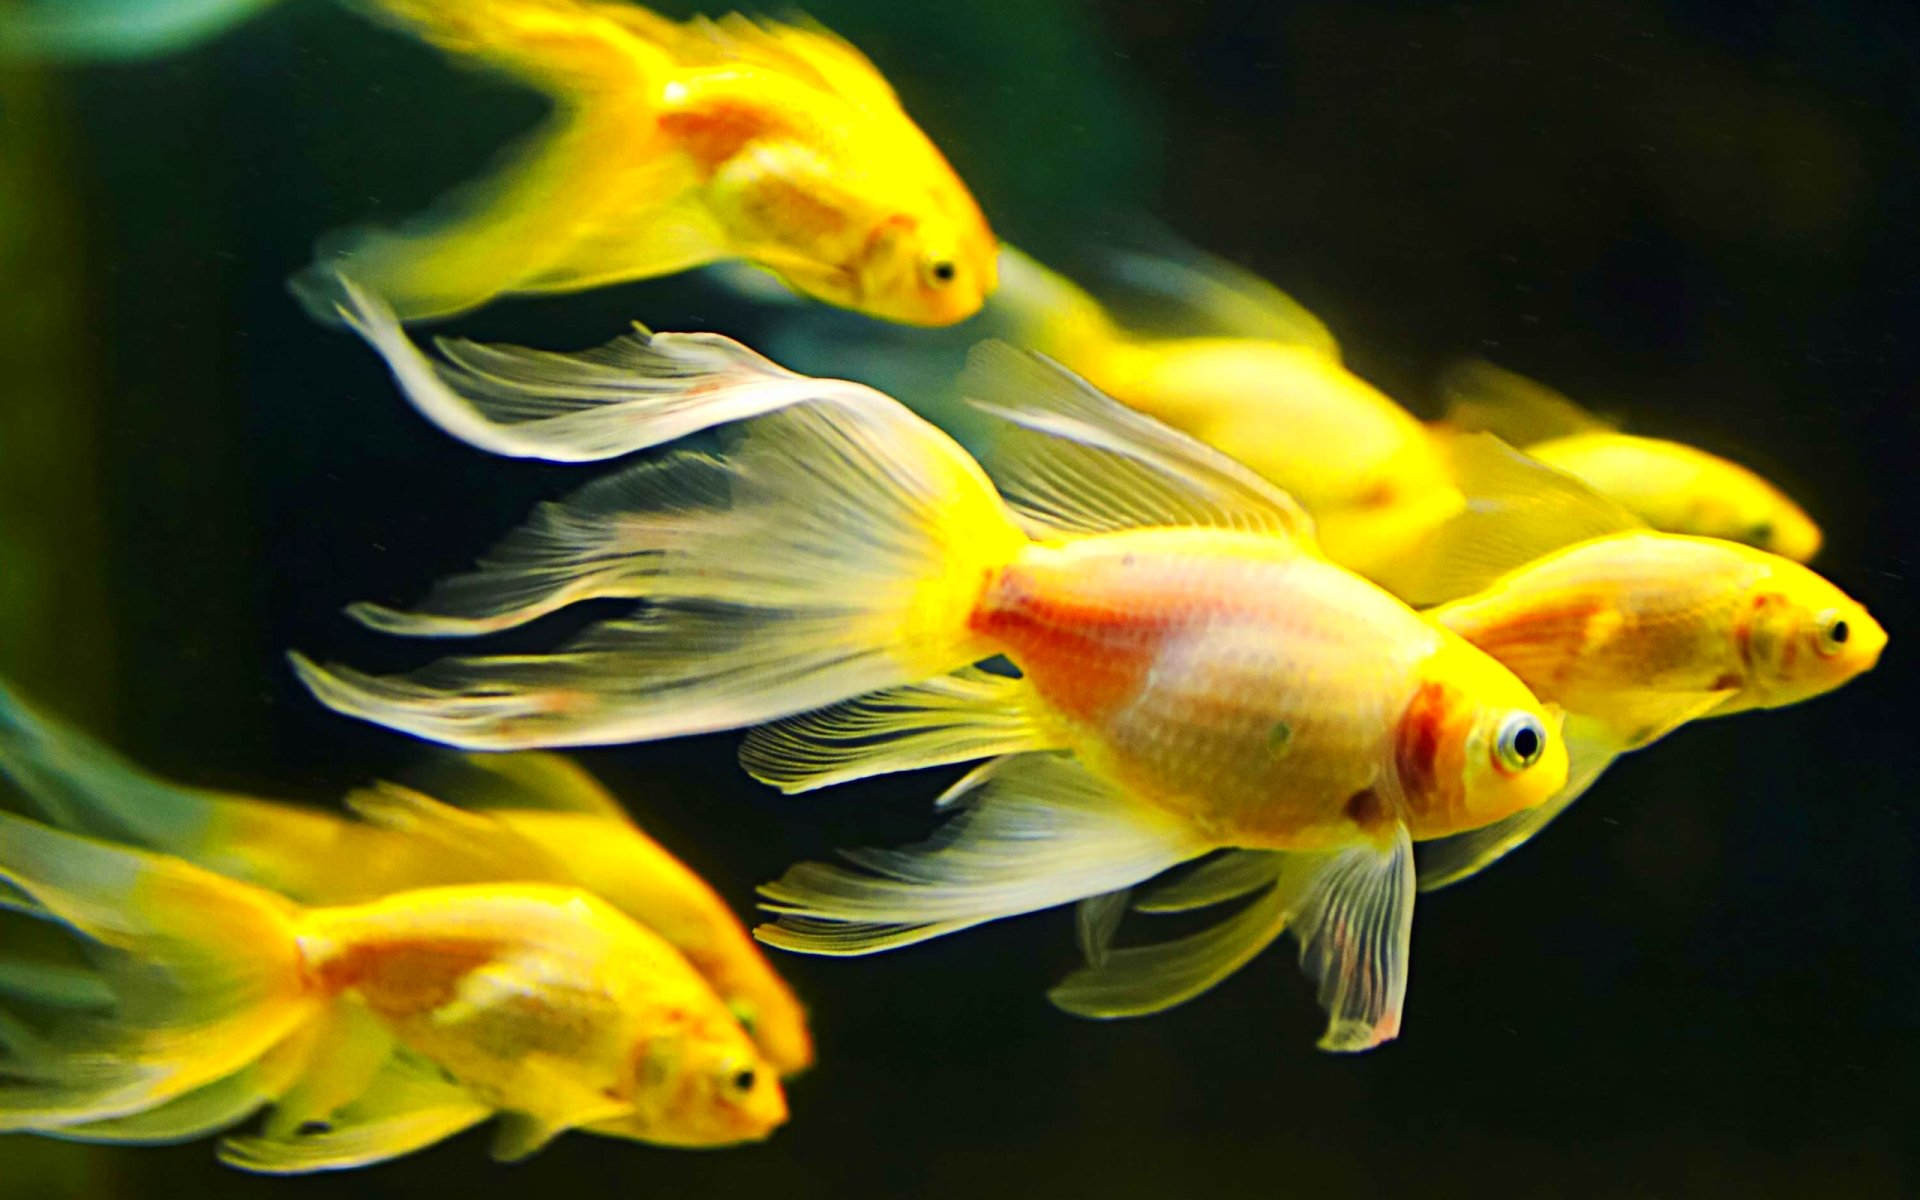 fish fishes underwater ocean sea sealife nature wallpaper